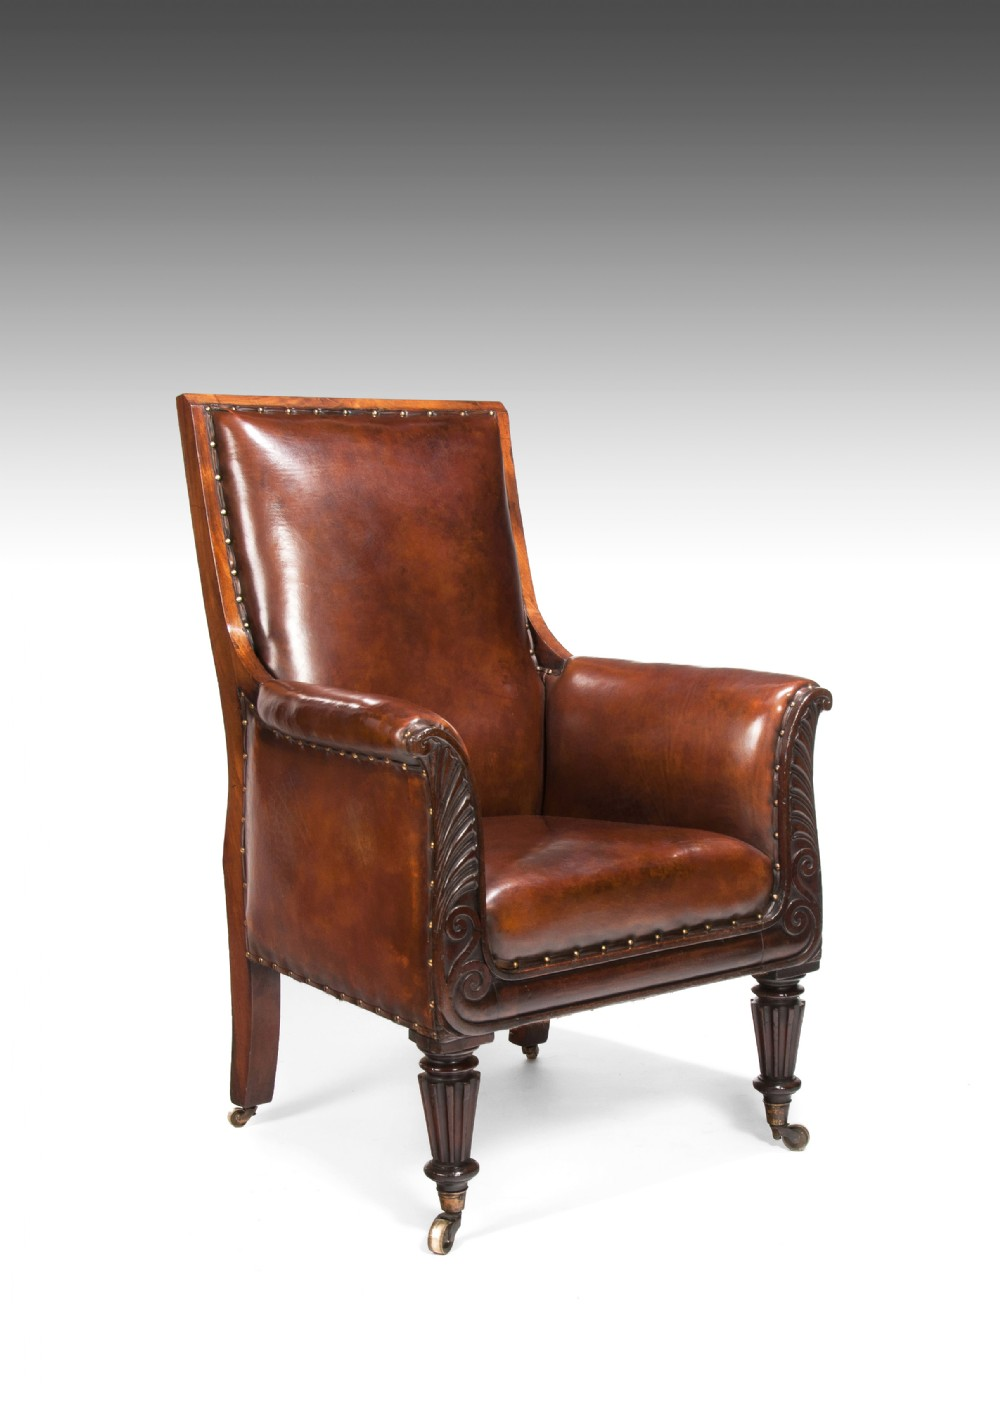 fine late regency mahogany armchair of neoclassical design with leather upholstery